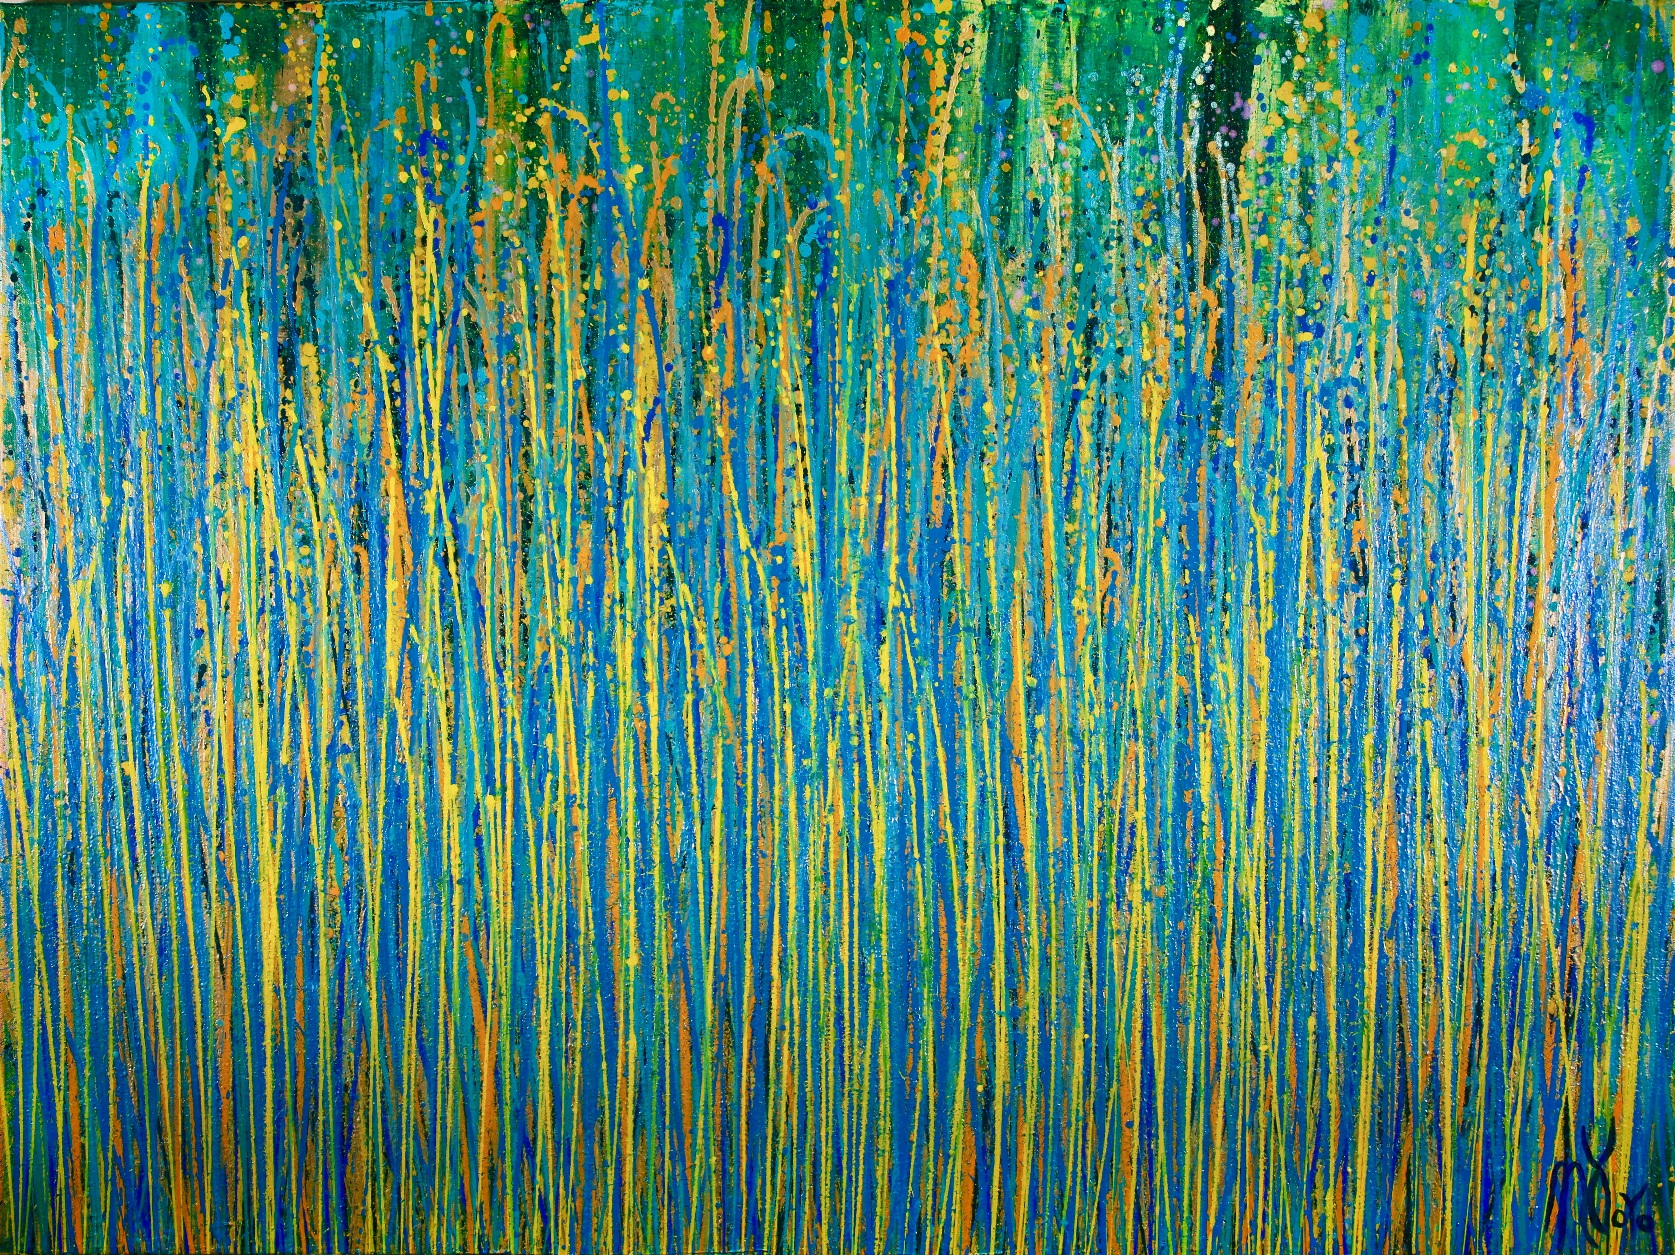 Full Image - Under the morning sun - abstract painting by Nestor Toro